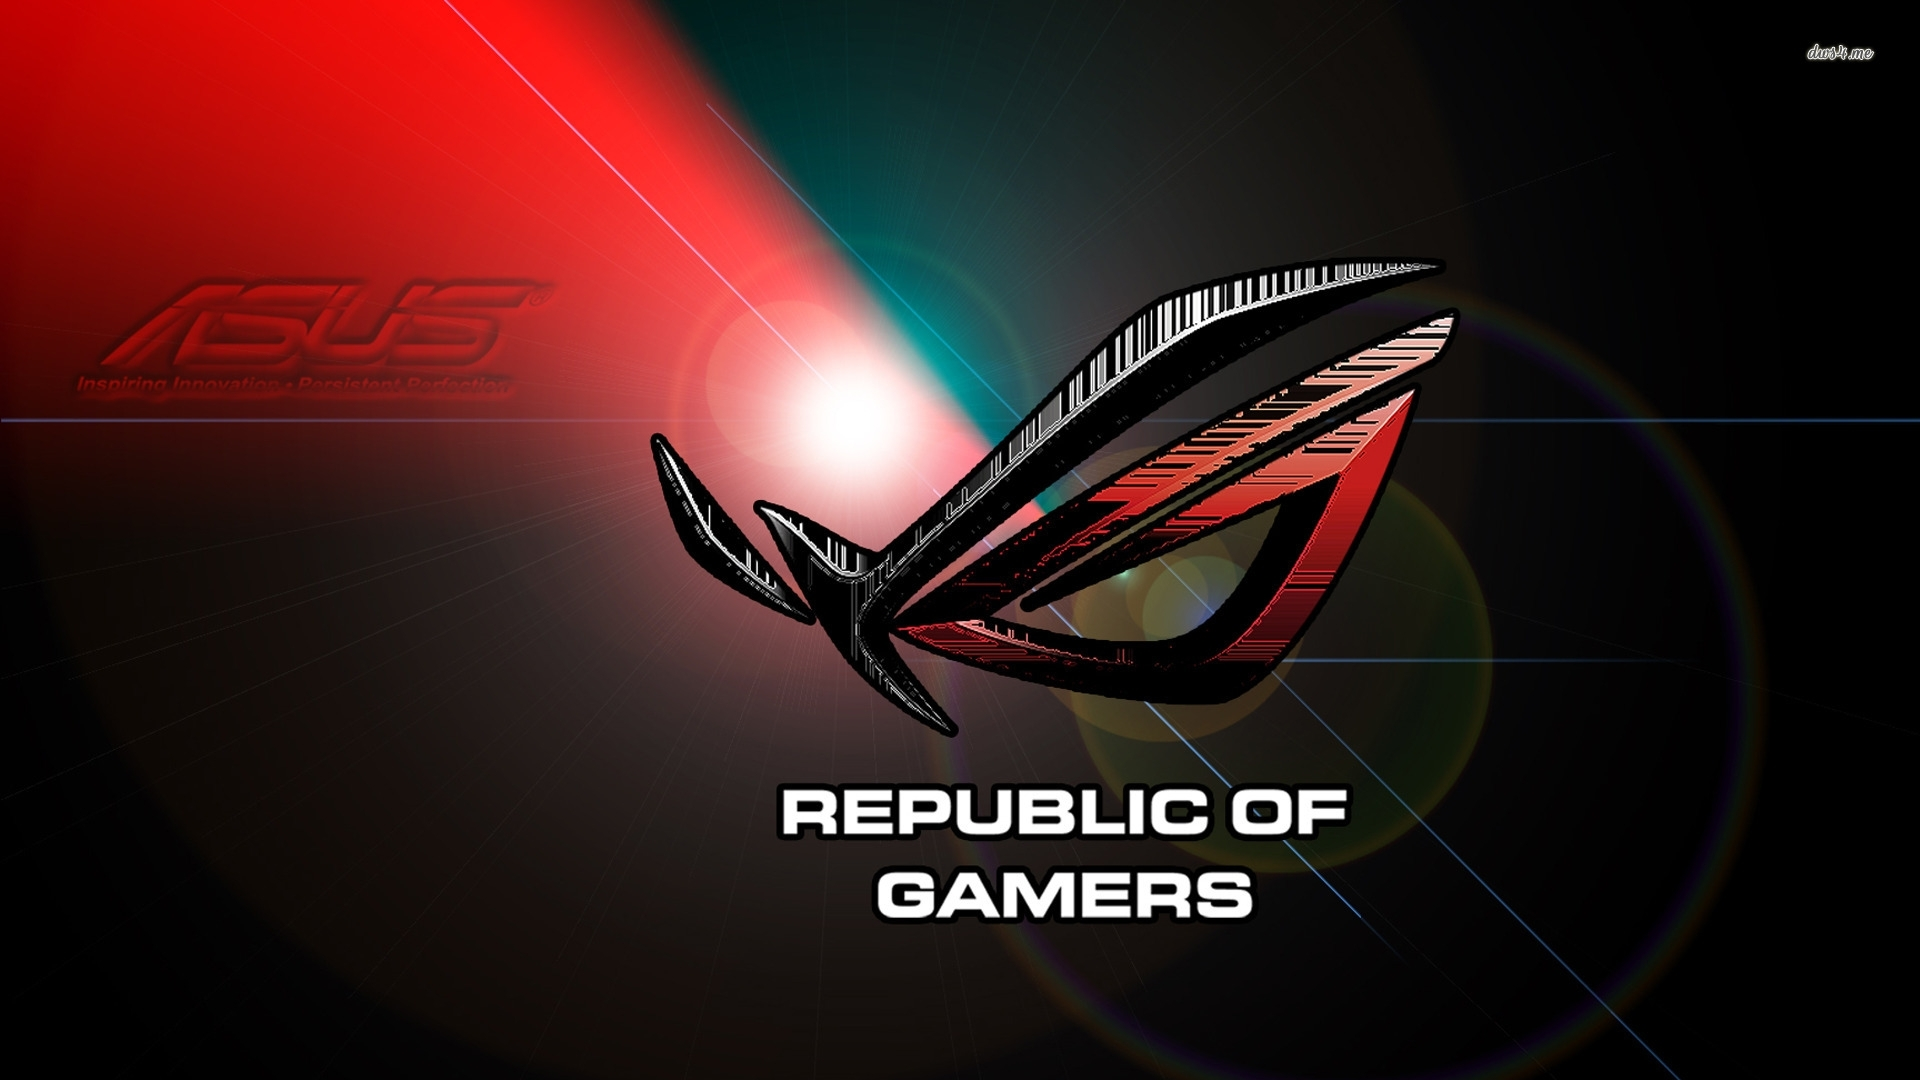 republic of gamers wallpaper - wallpapers browse